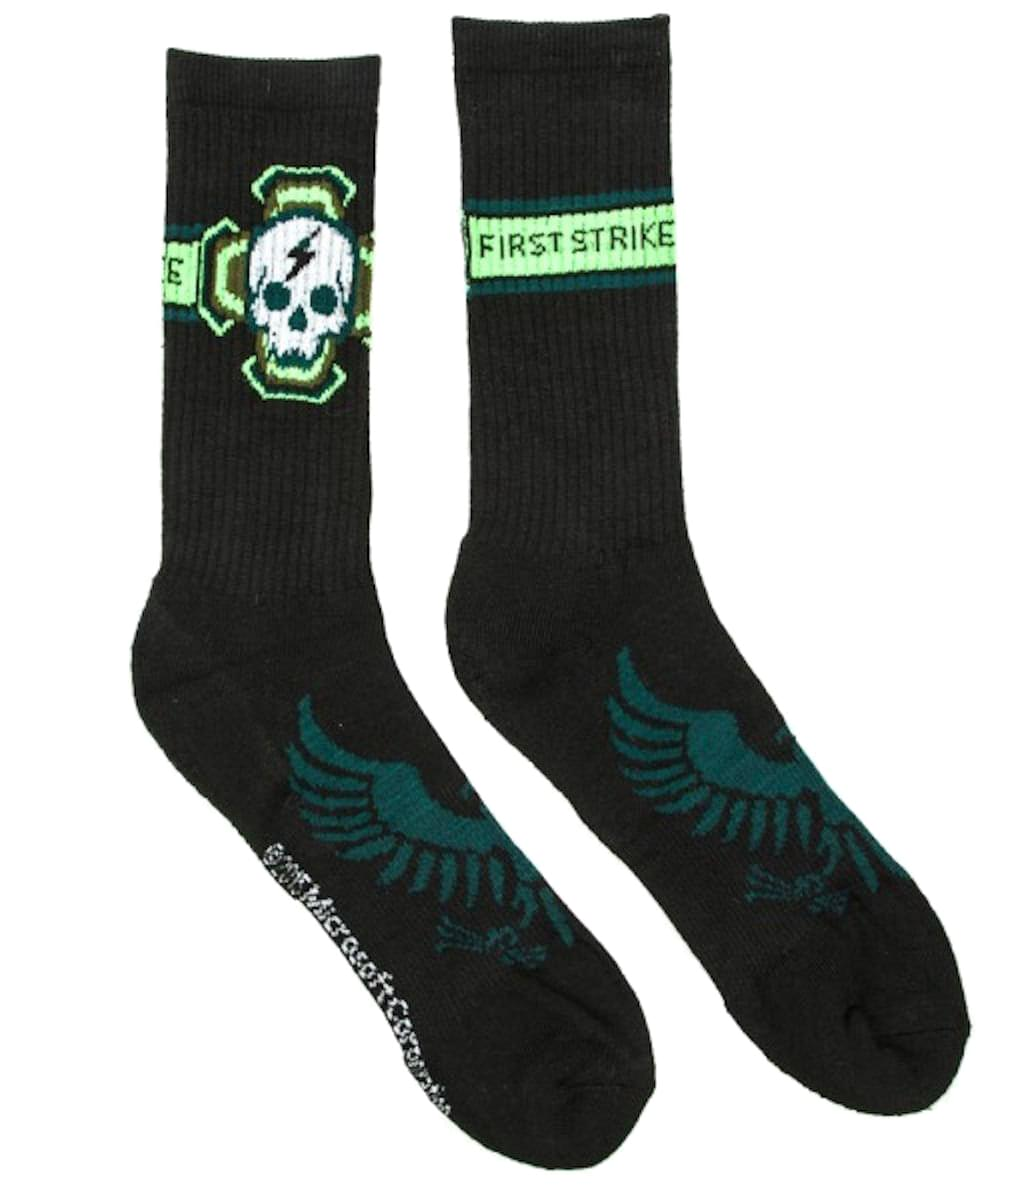 Halo 5 First Strike Men's Crew Socks